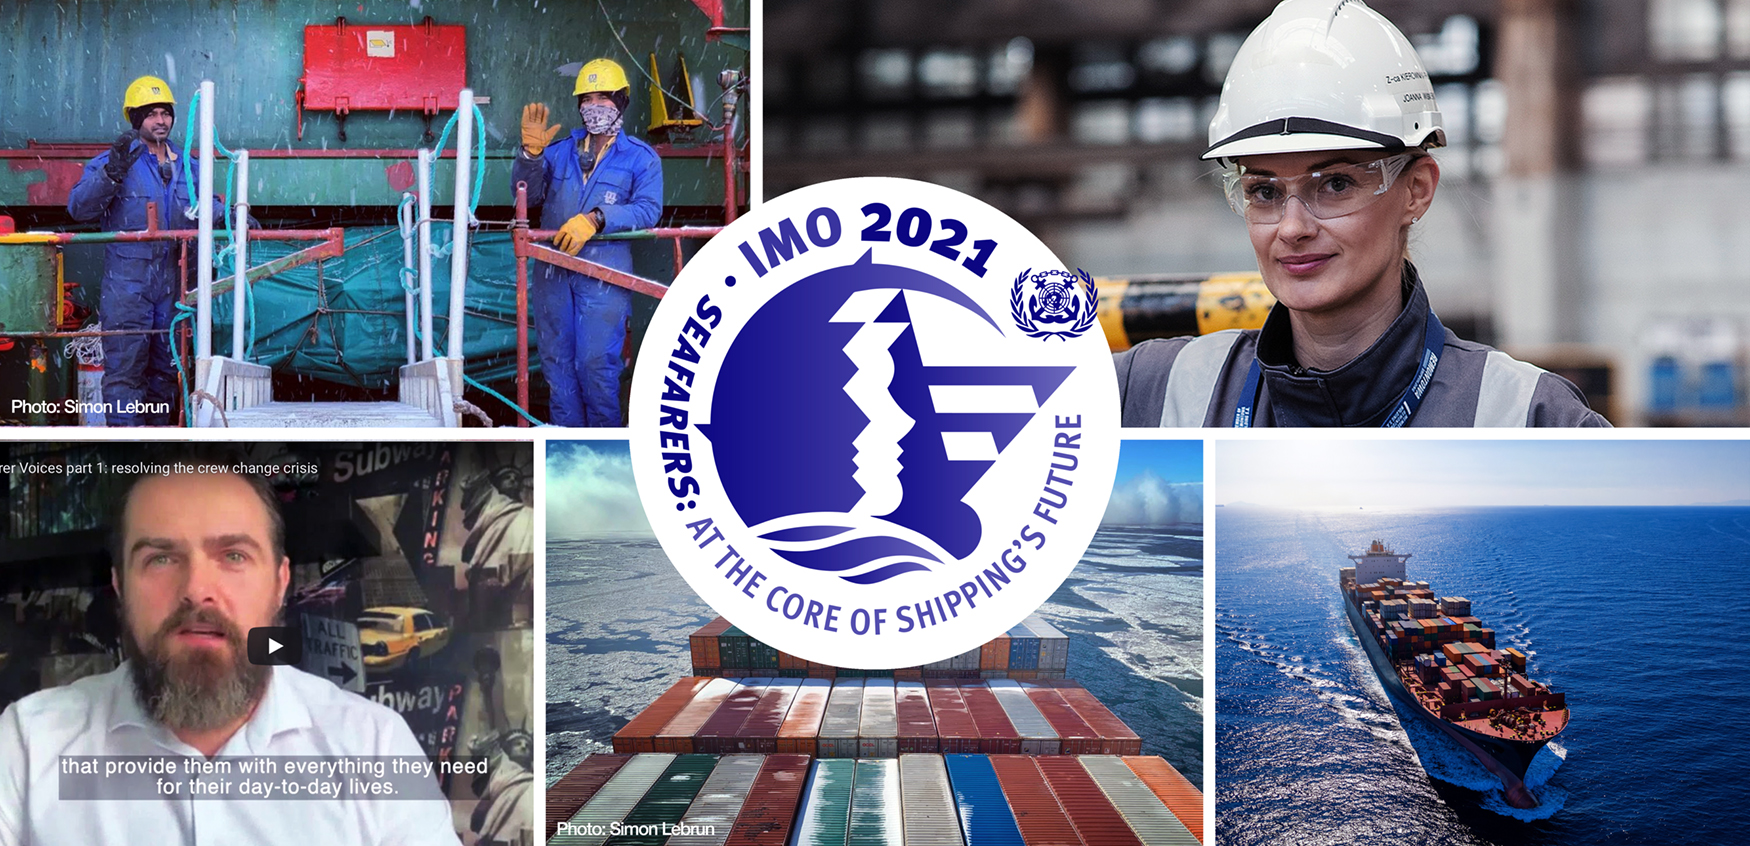 The World Maritime Theme for 2021 is dedicated to seafarers, highlighting their central role in the future of shipping.